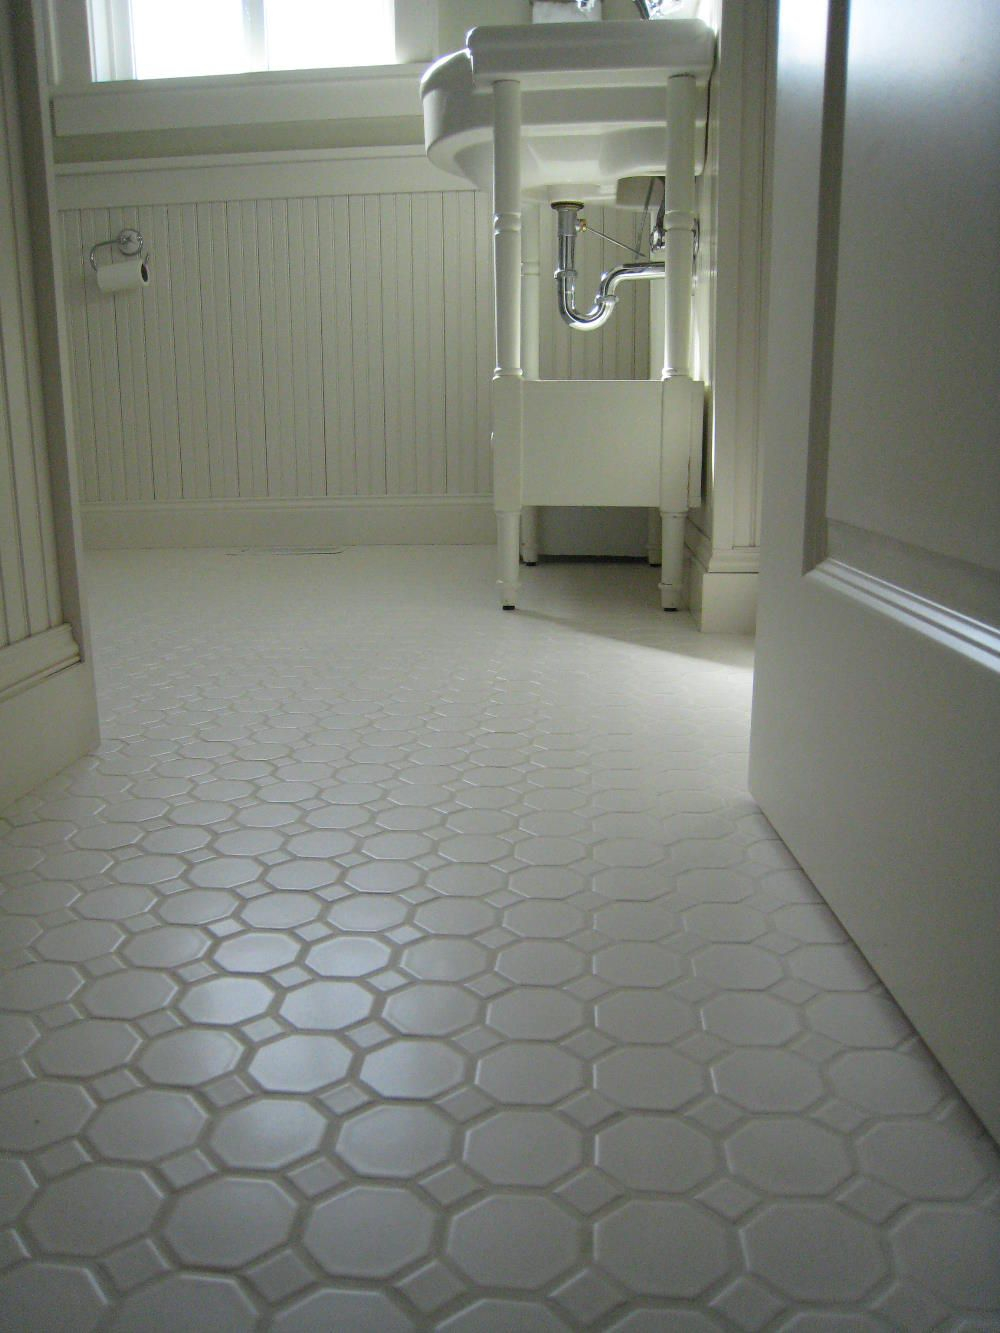 Lovely White Porcelian, Hexagon Floor Tile Shown Installed. The Type Of throughout Inspirational Easy To Install Bathroom Flooring